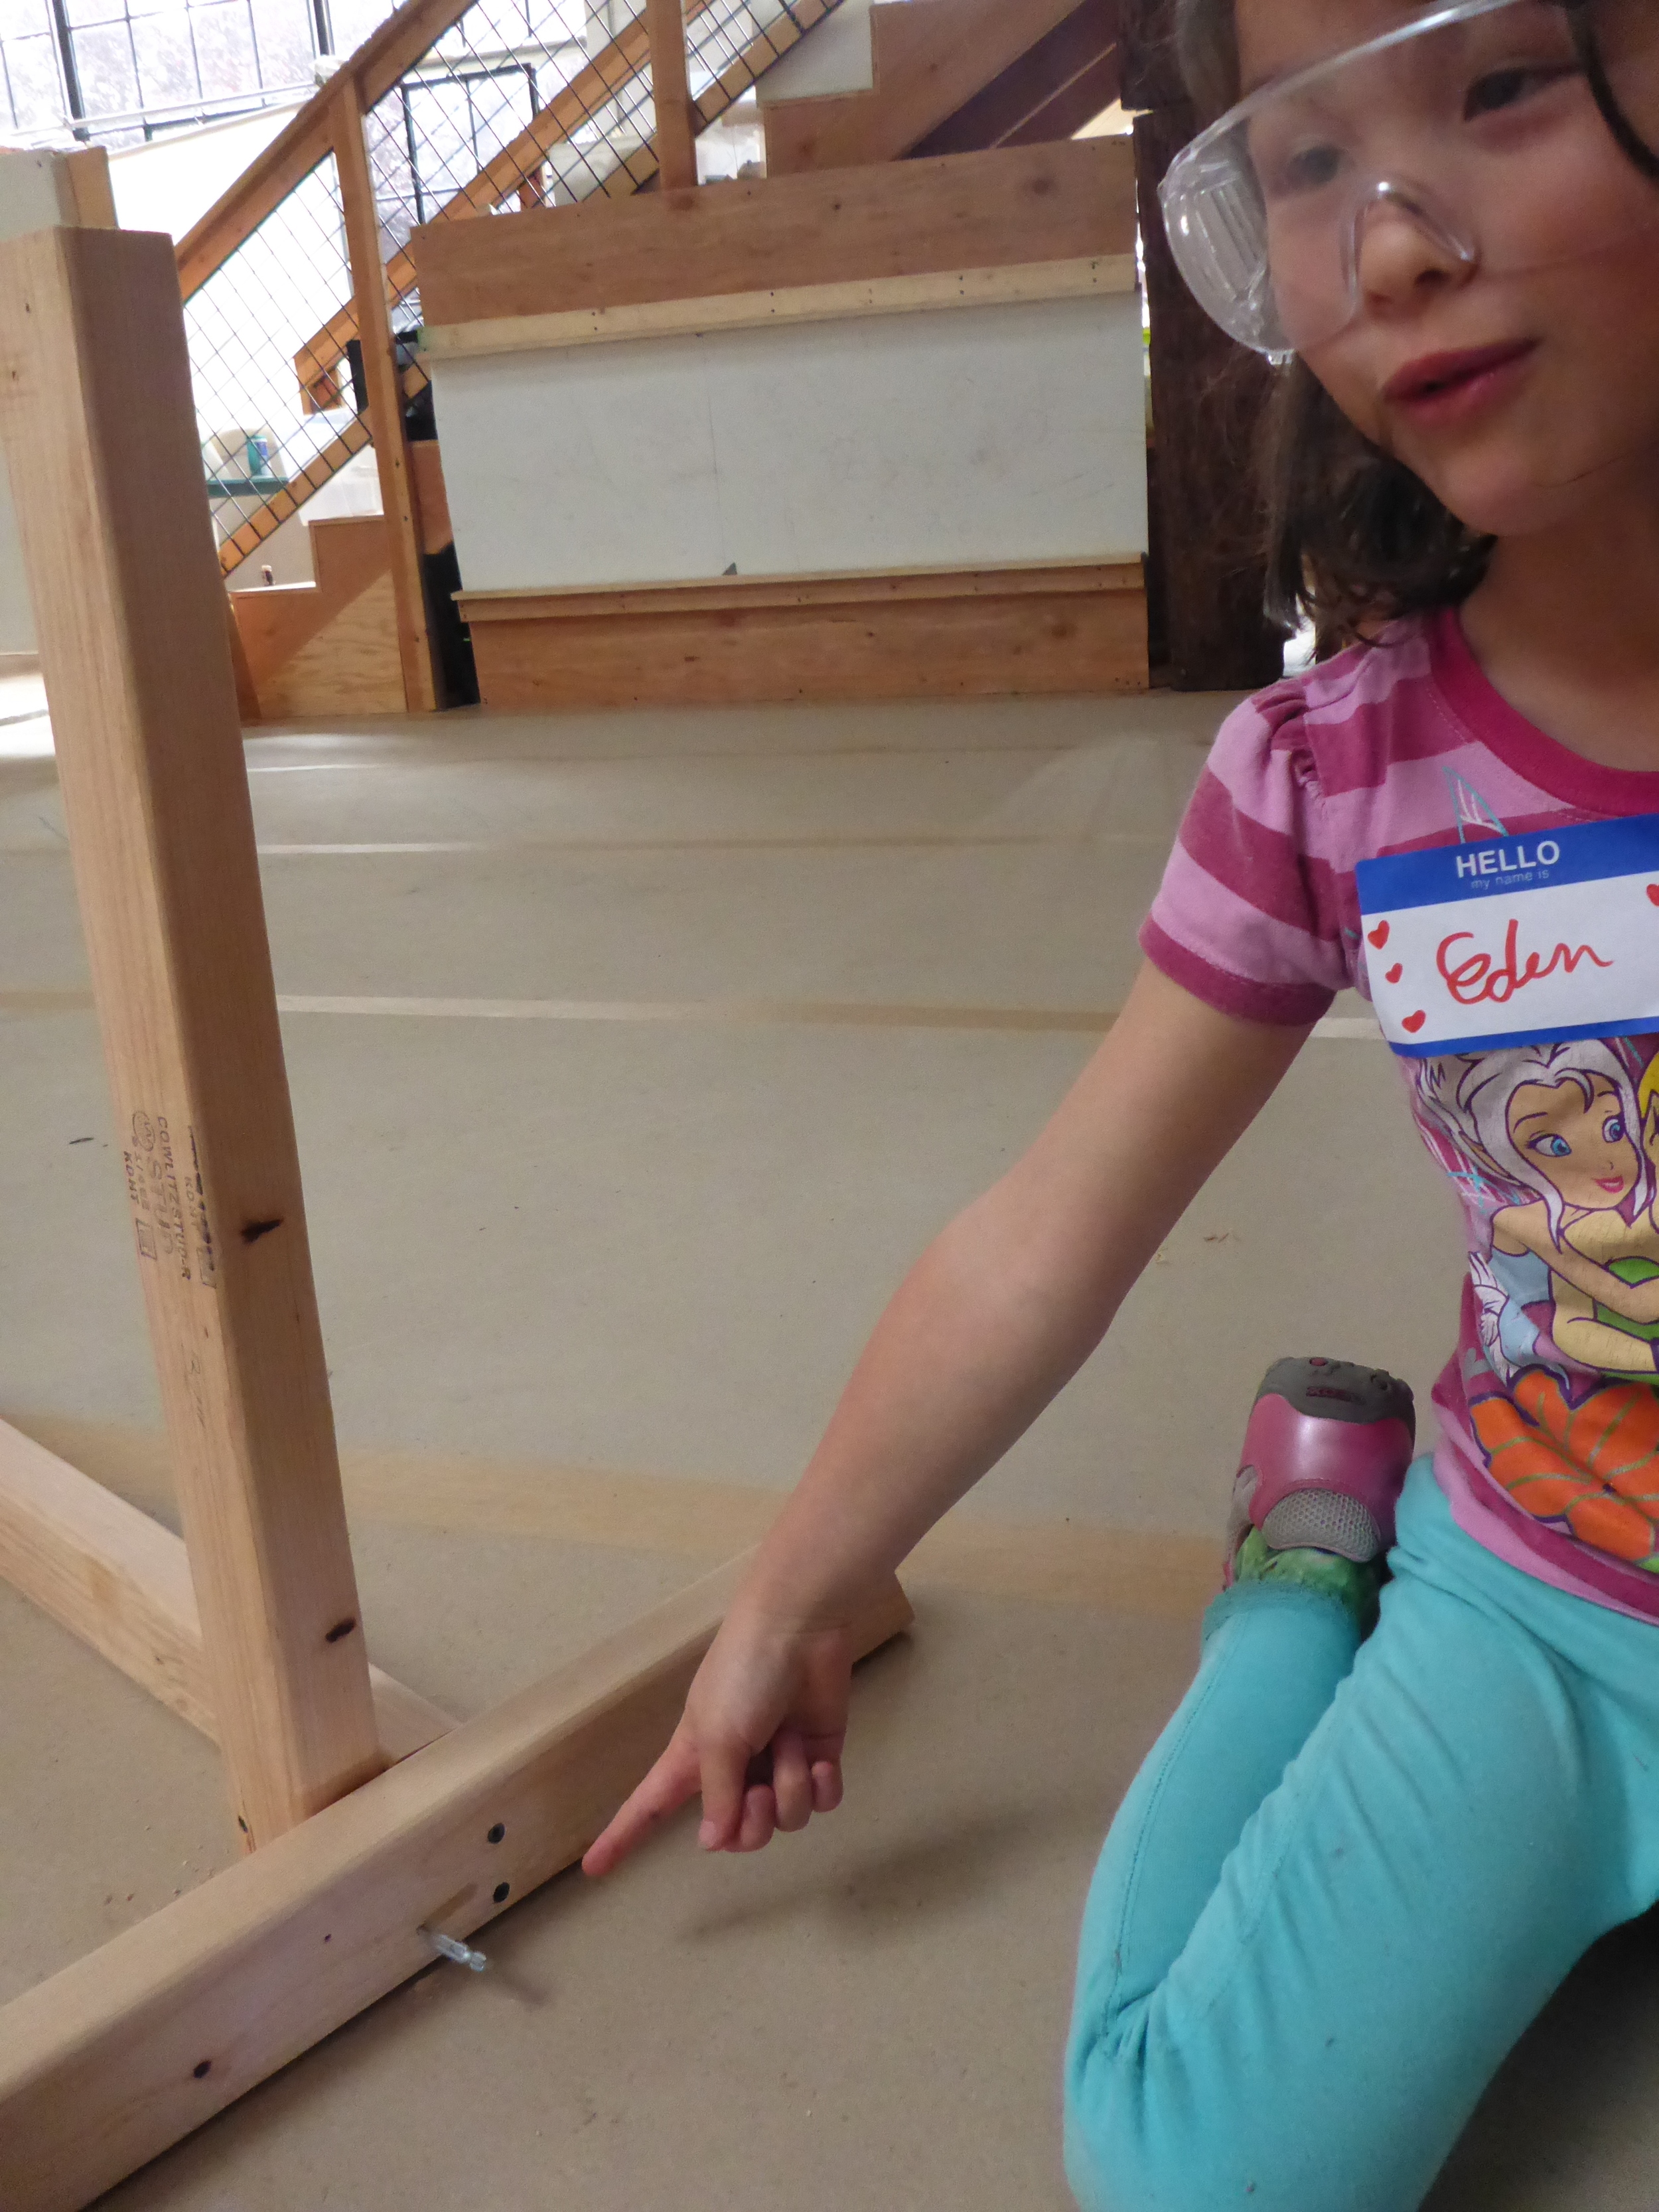 Eden shows her teamates how the drill bit wasn't locked into her drill before she started drilling.